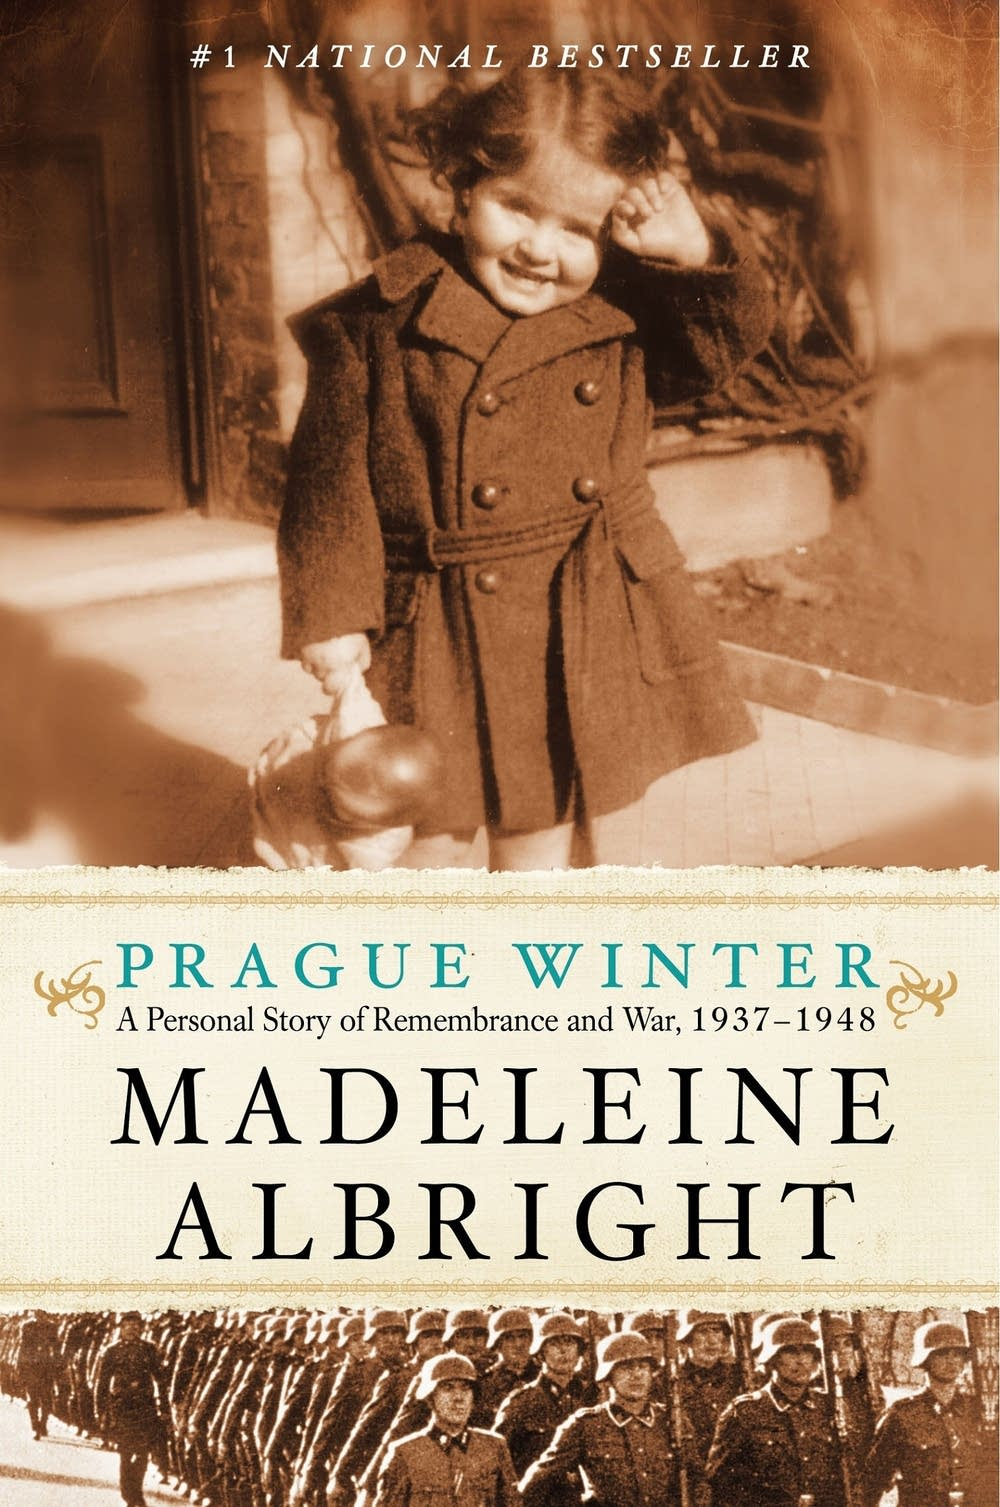 'Prague Winter' by Madeleine Albright